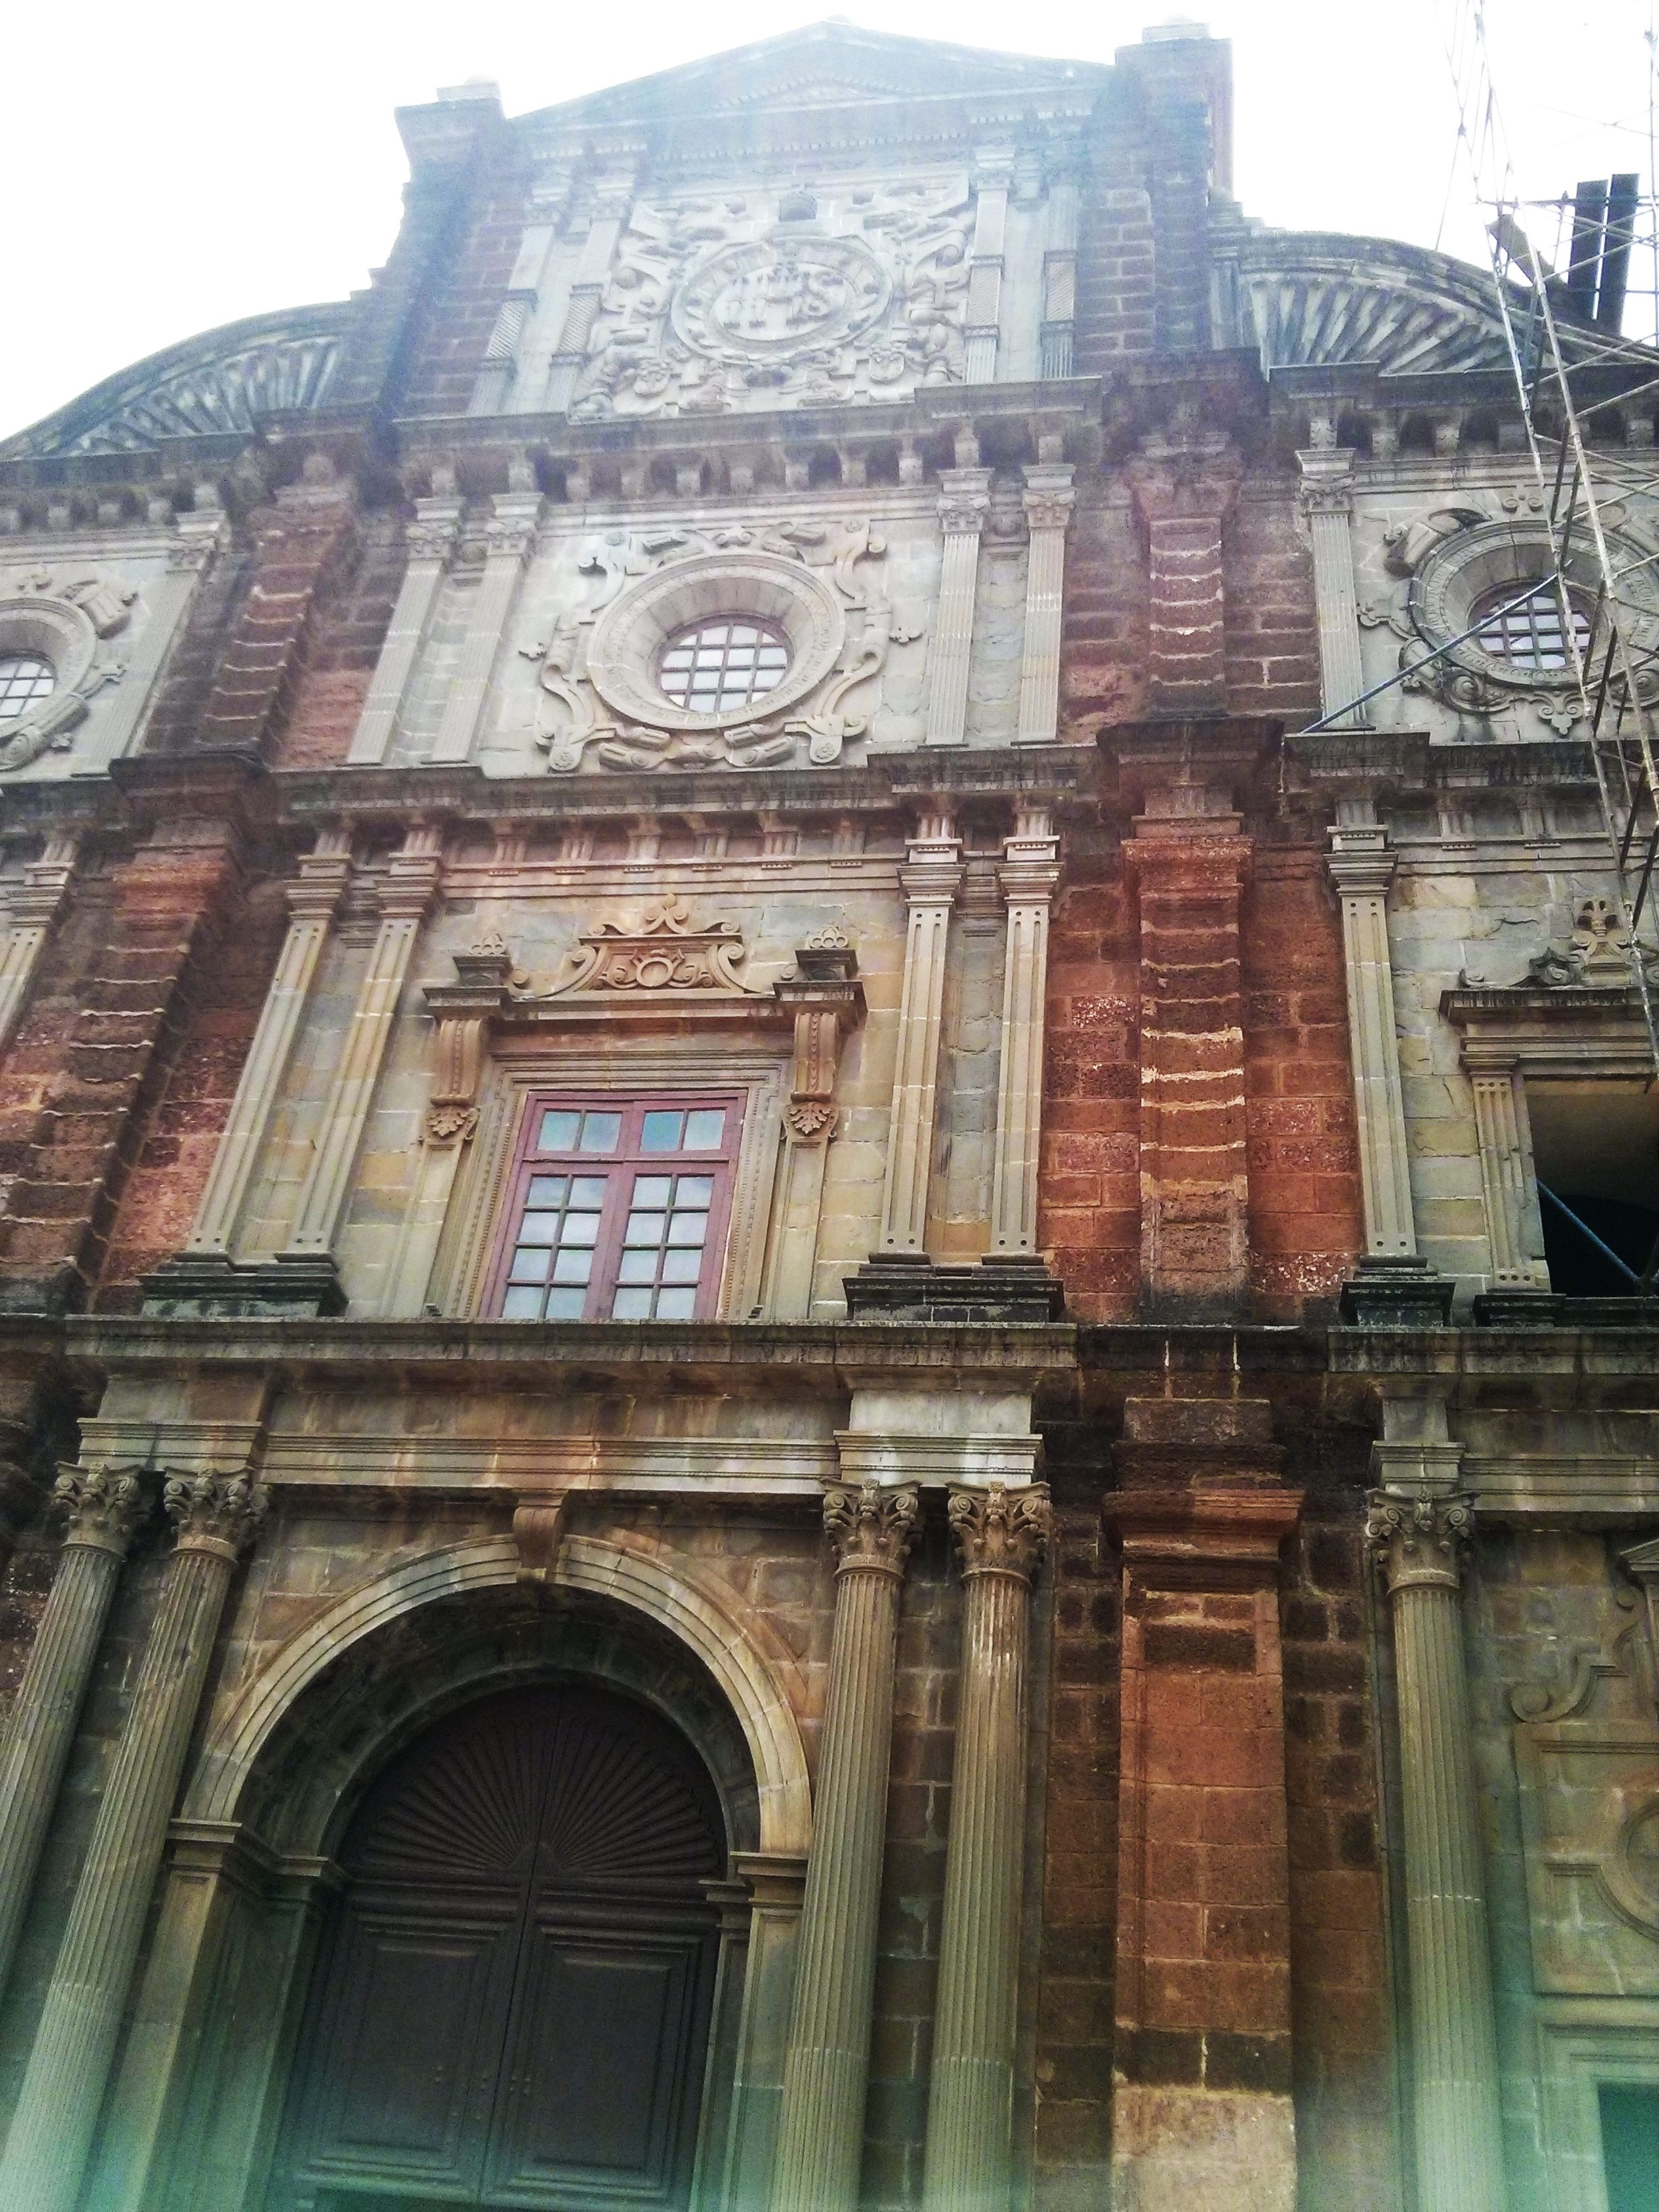 Basilica of Bom Jesus Church, Old Goachurch